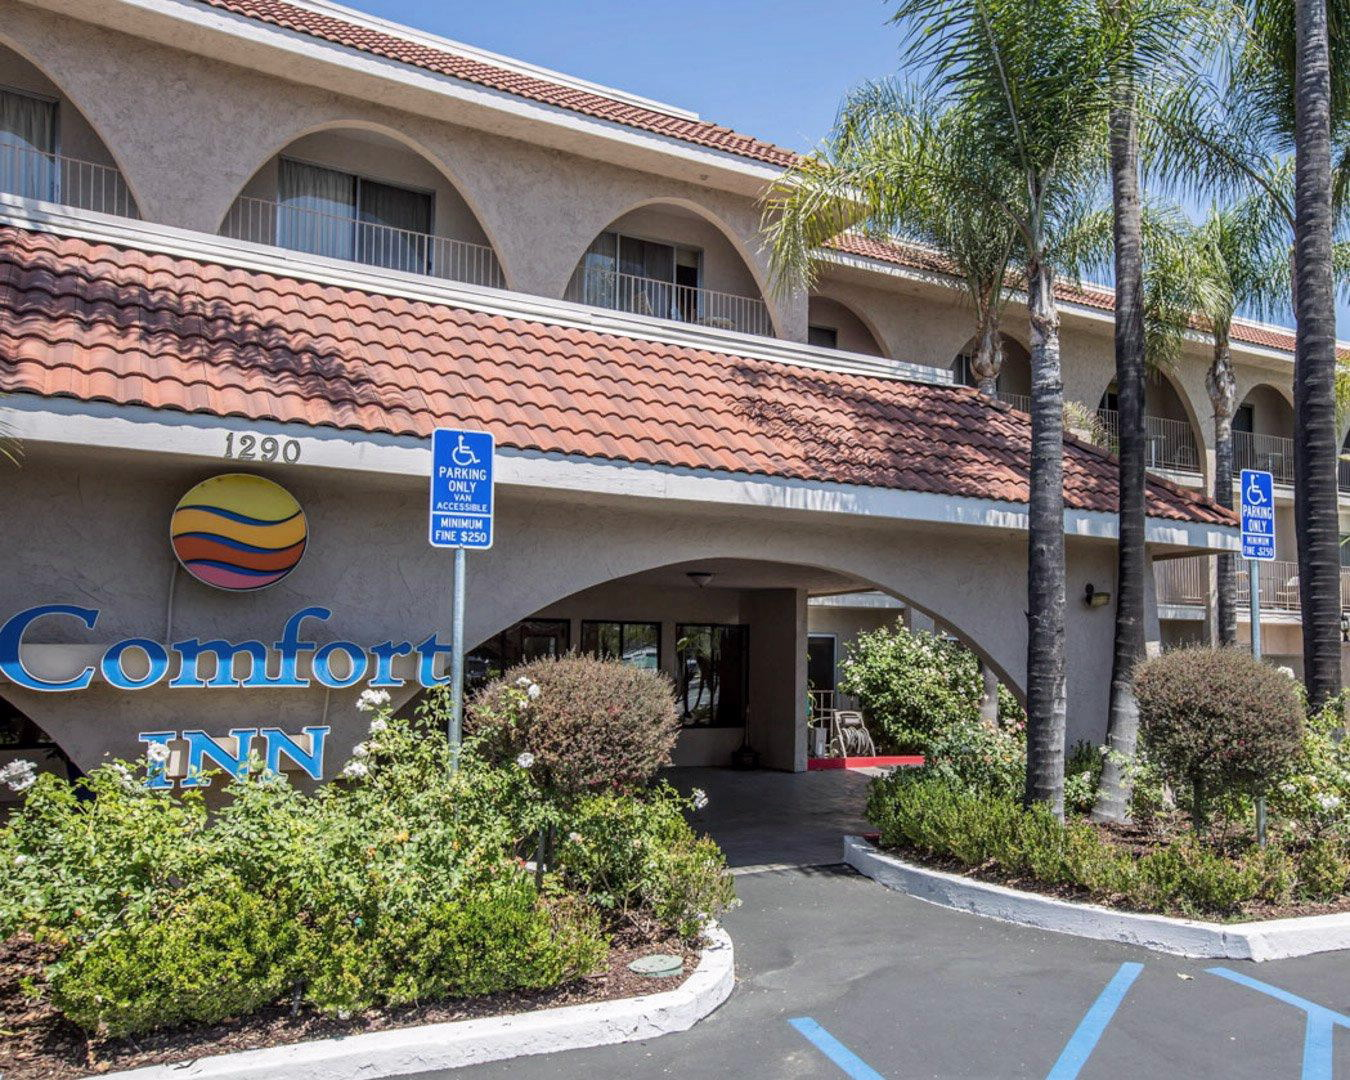 Hotel in CA Escondido 92029 Comfort Inn Escondido San Diego North County 1290 West Valley Parkway  (760)489-1010